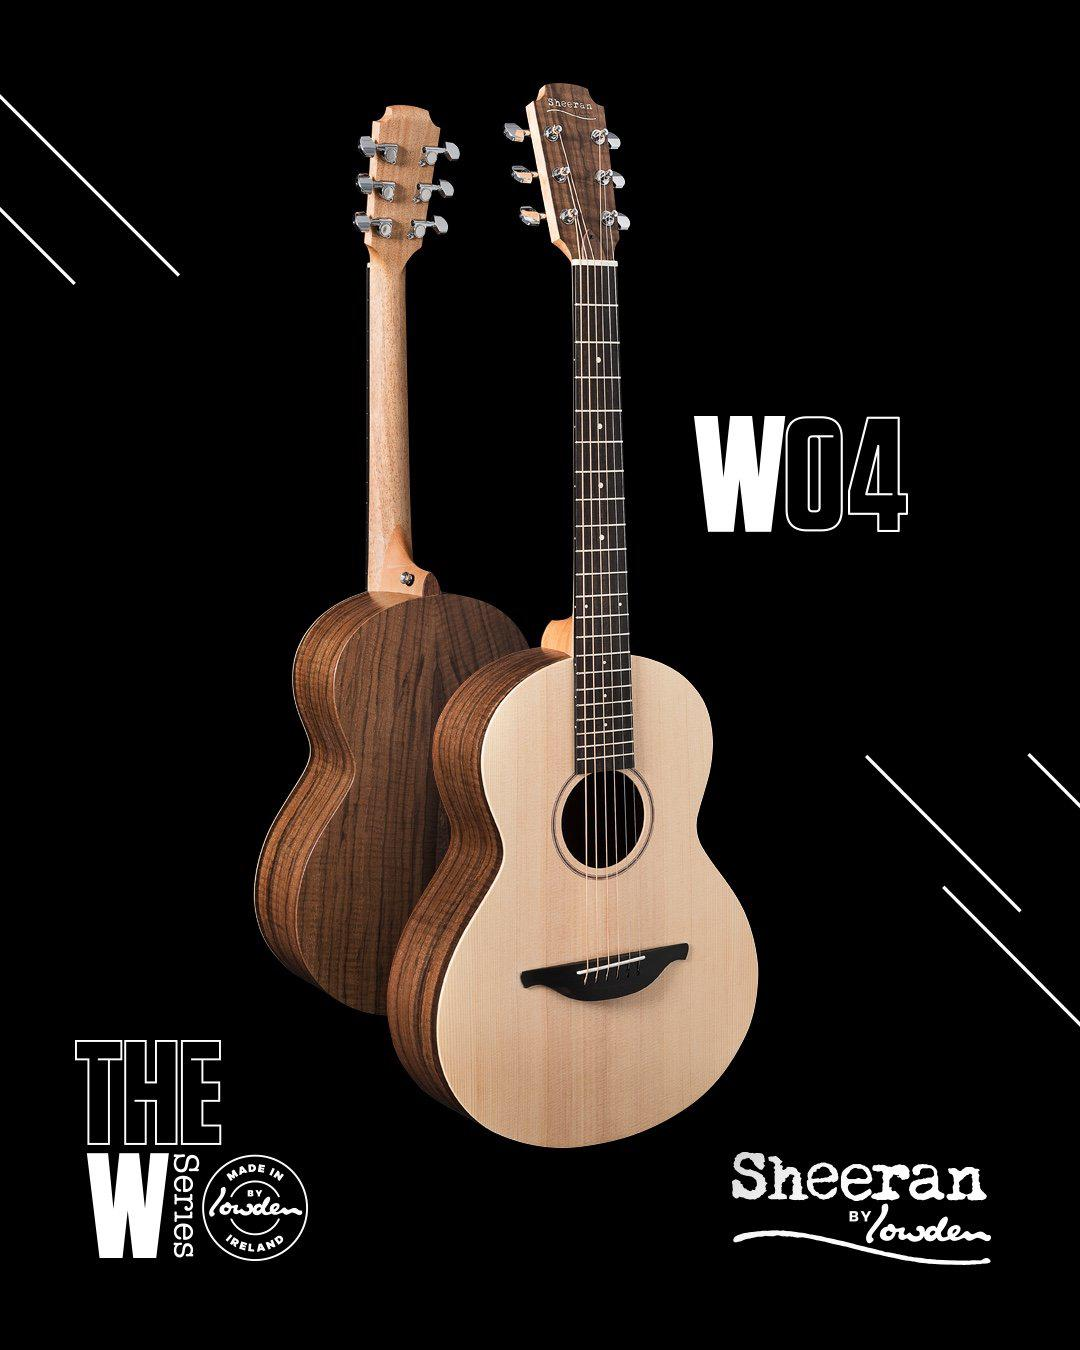 Lowden Sheeran W4 Sitka / Walnut with Bevel and Pick Up #4170 In Stock Now! - Lowden Guitars - Heartbreaker Guitars